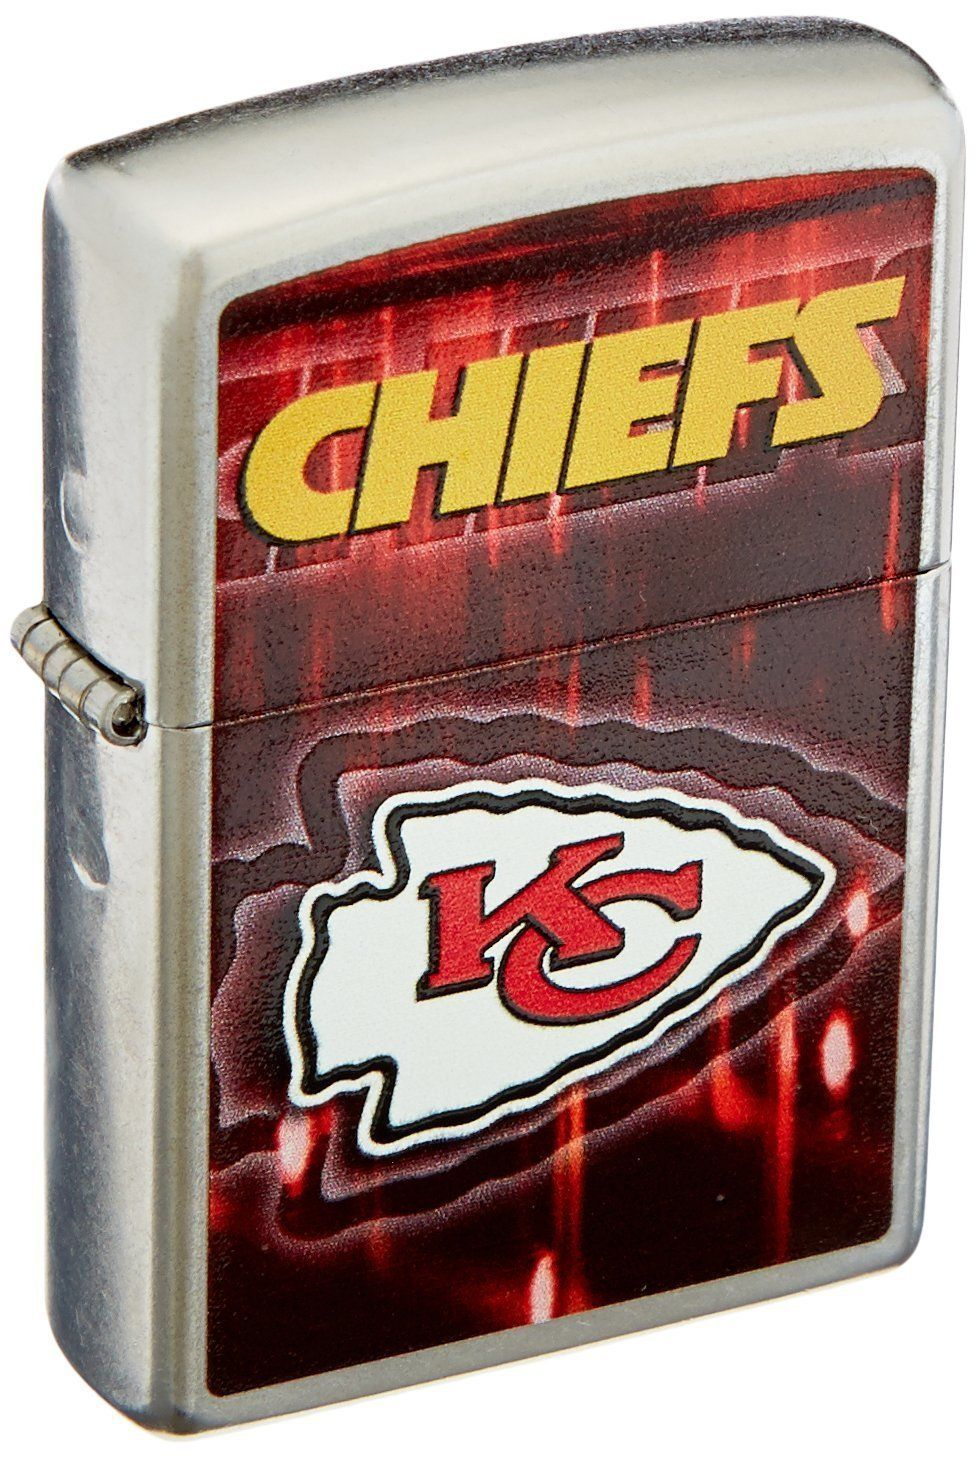 Personalized Nfl Kansas City Chiefs Zippo Lighter Free Engraving This Is An Amazon Affiliate L Personalized Nfl Nfl Kansas City Chiefs Personalized Zippo